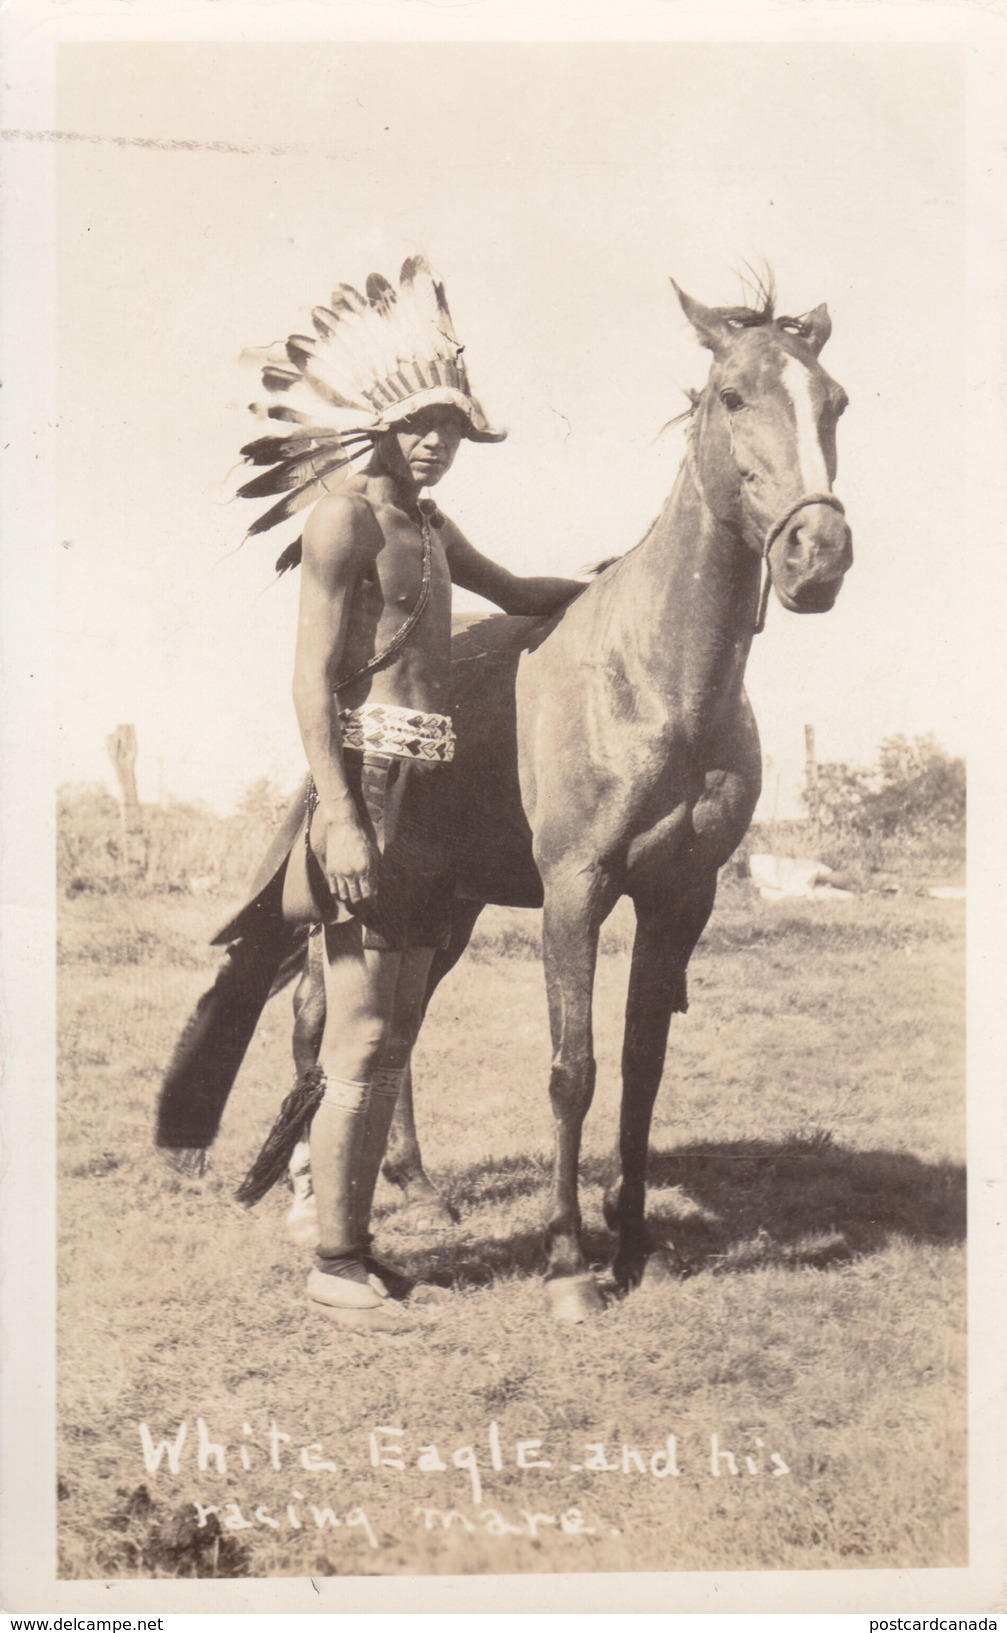 RPPC REAL PHOTO POSTCARD WHITE EAGLE AND HIS RACING HORSE - Native Americans